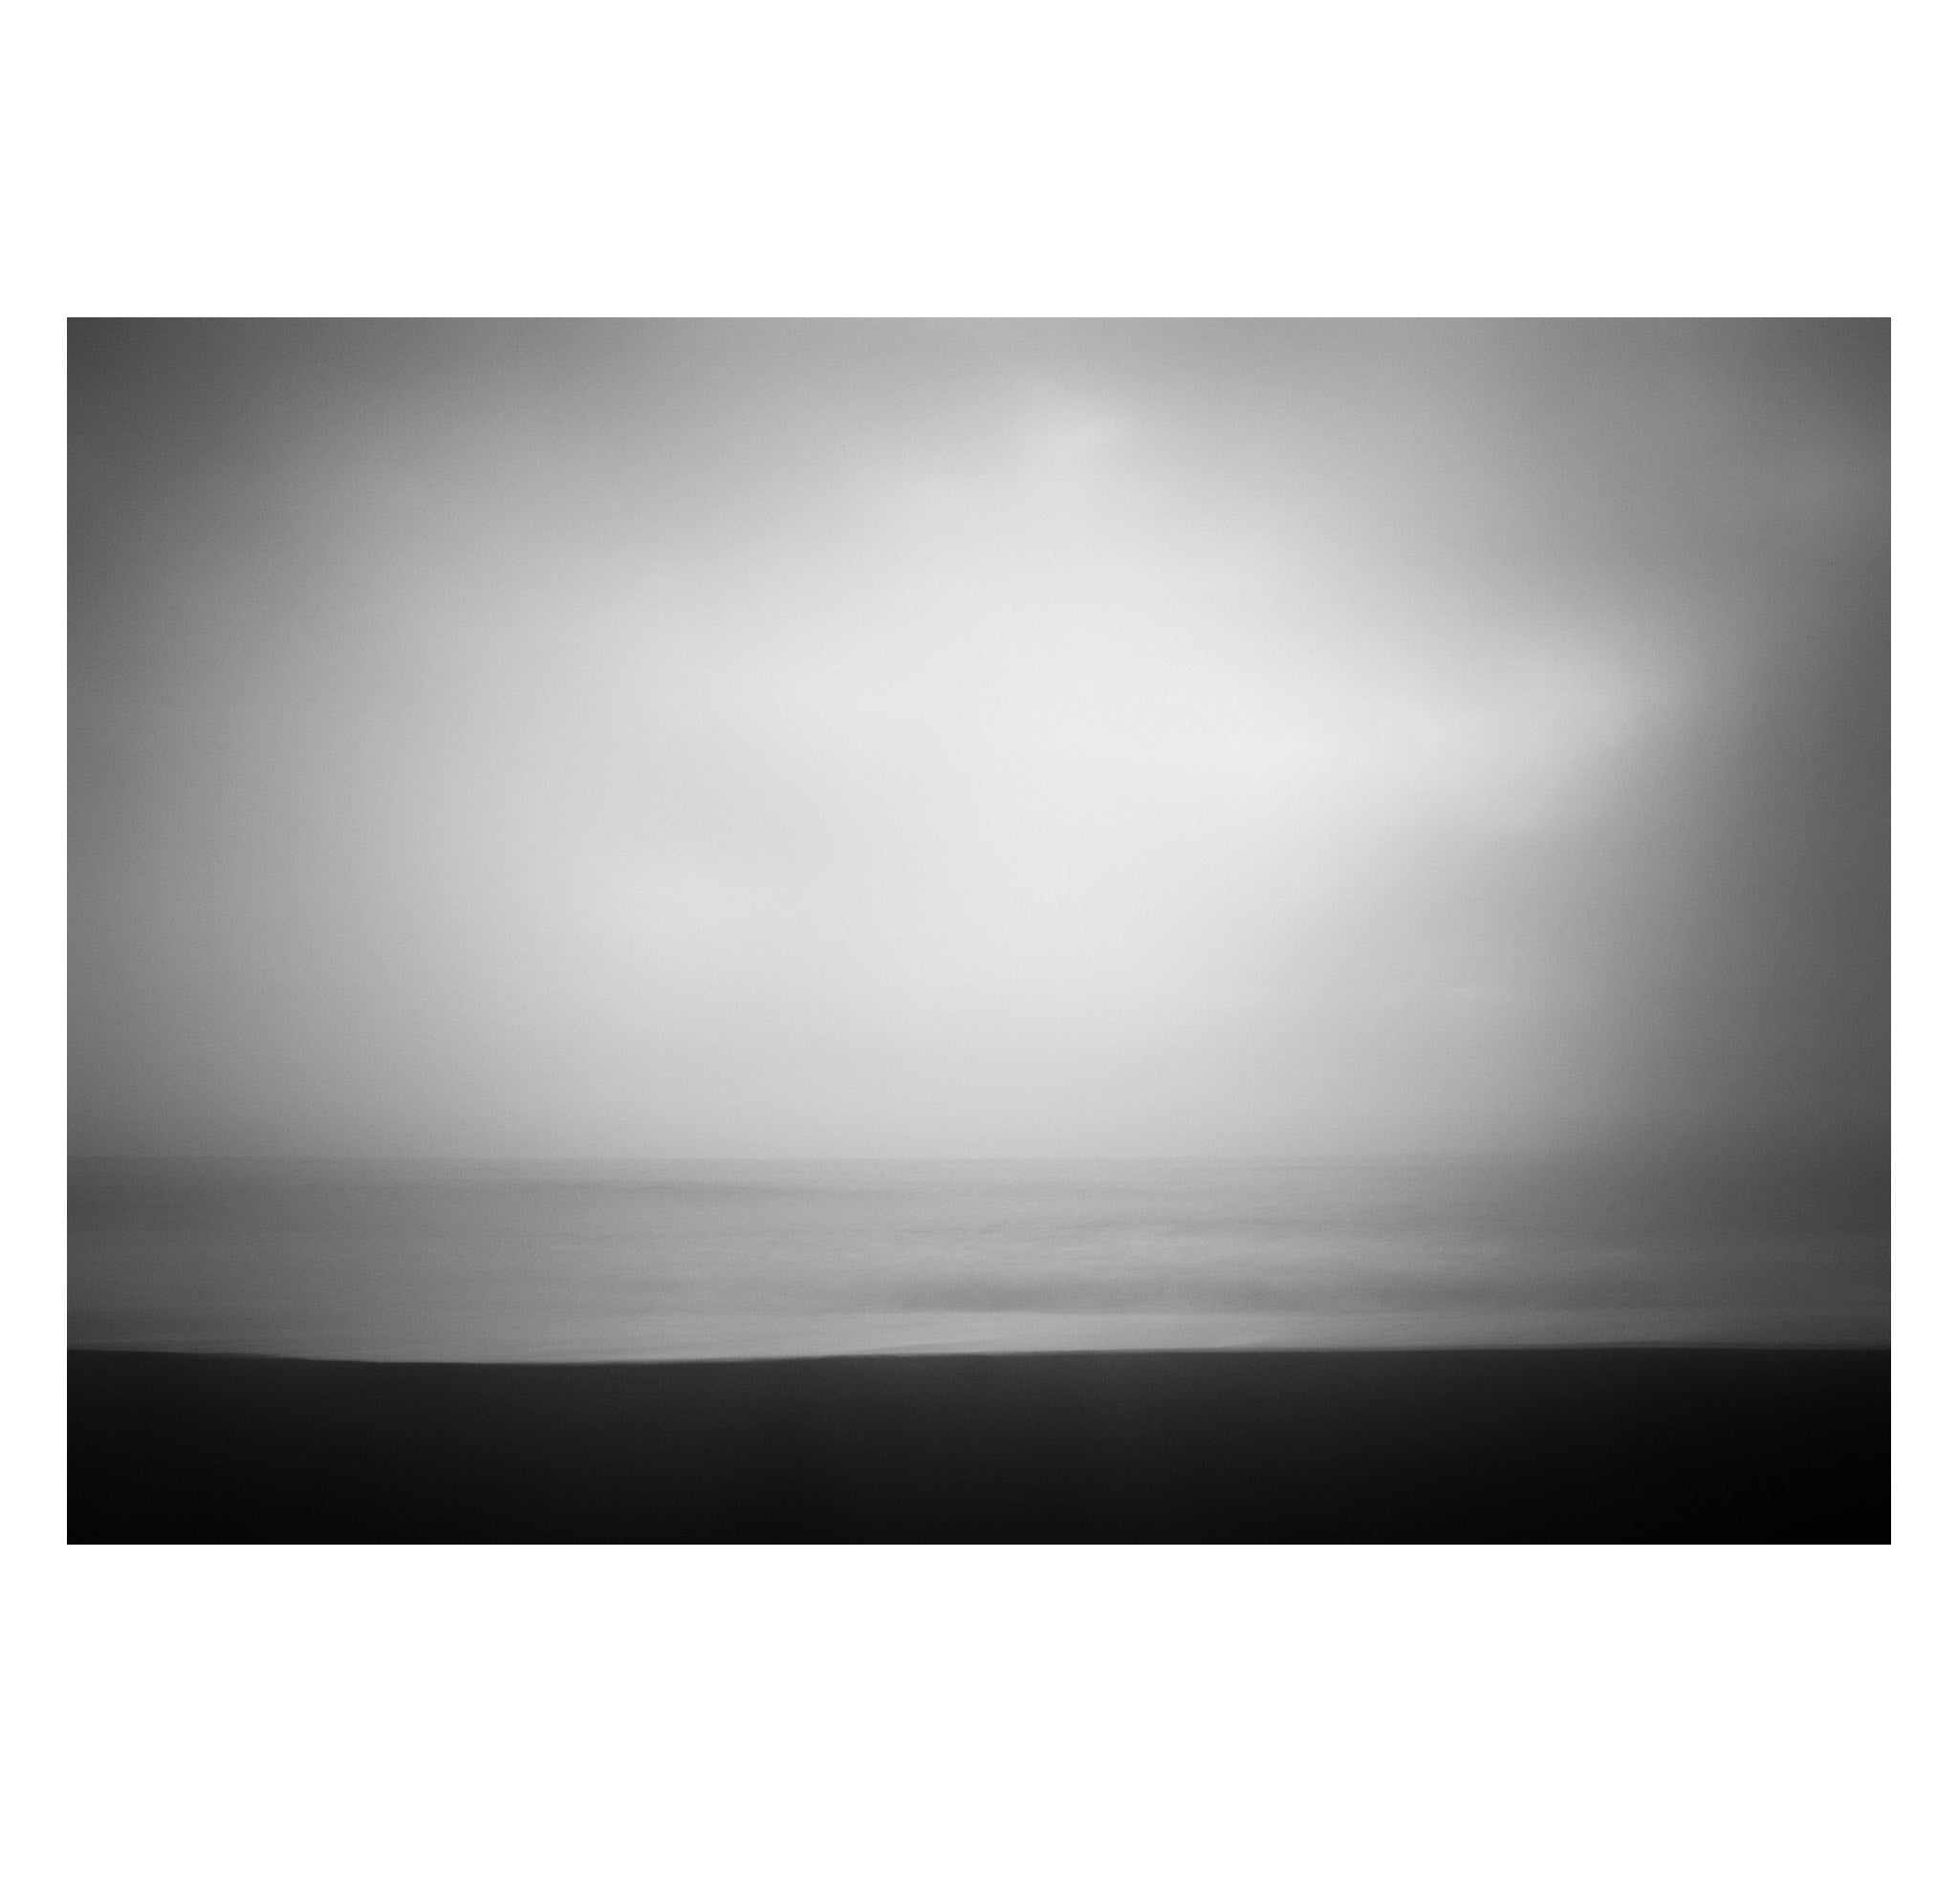 Michael Schlegel – Horizons No. 9